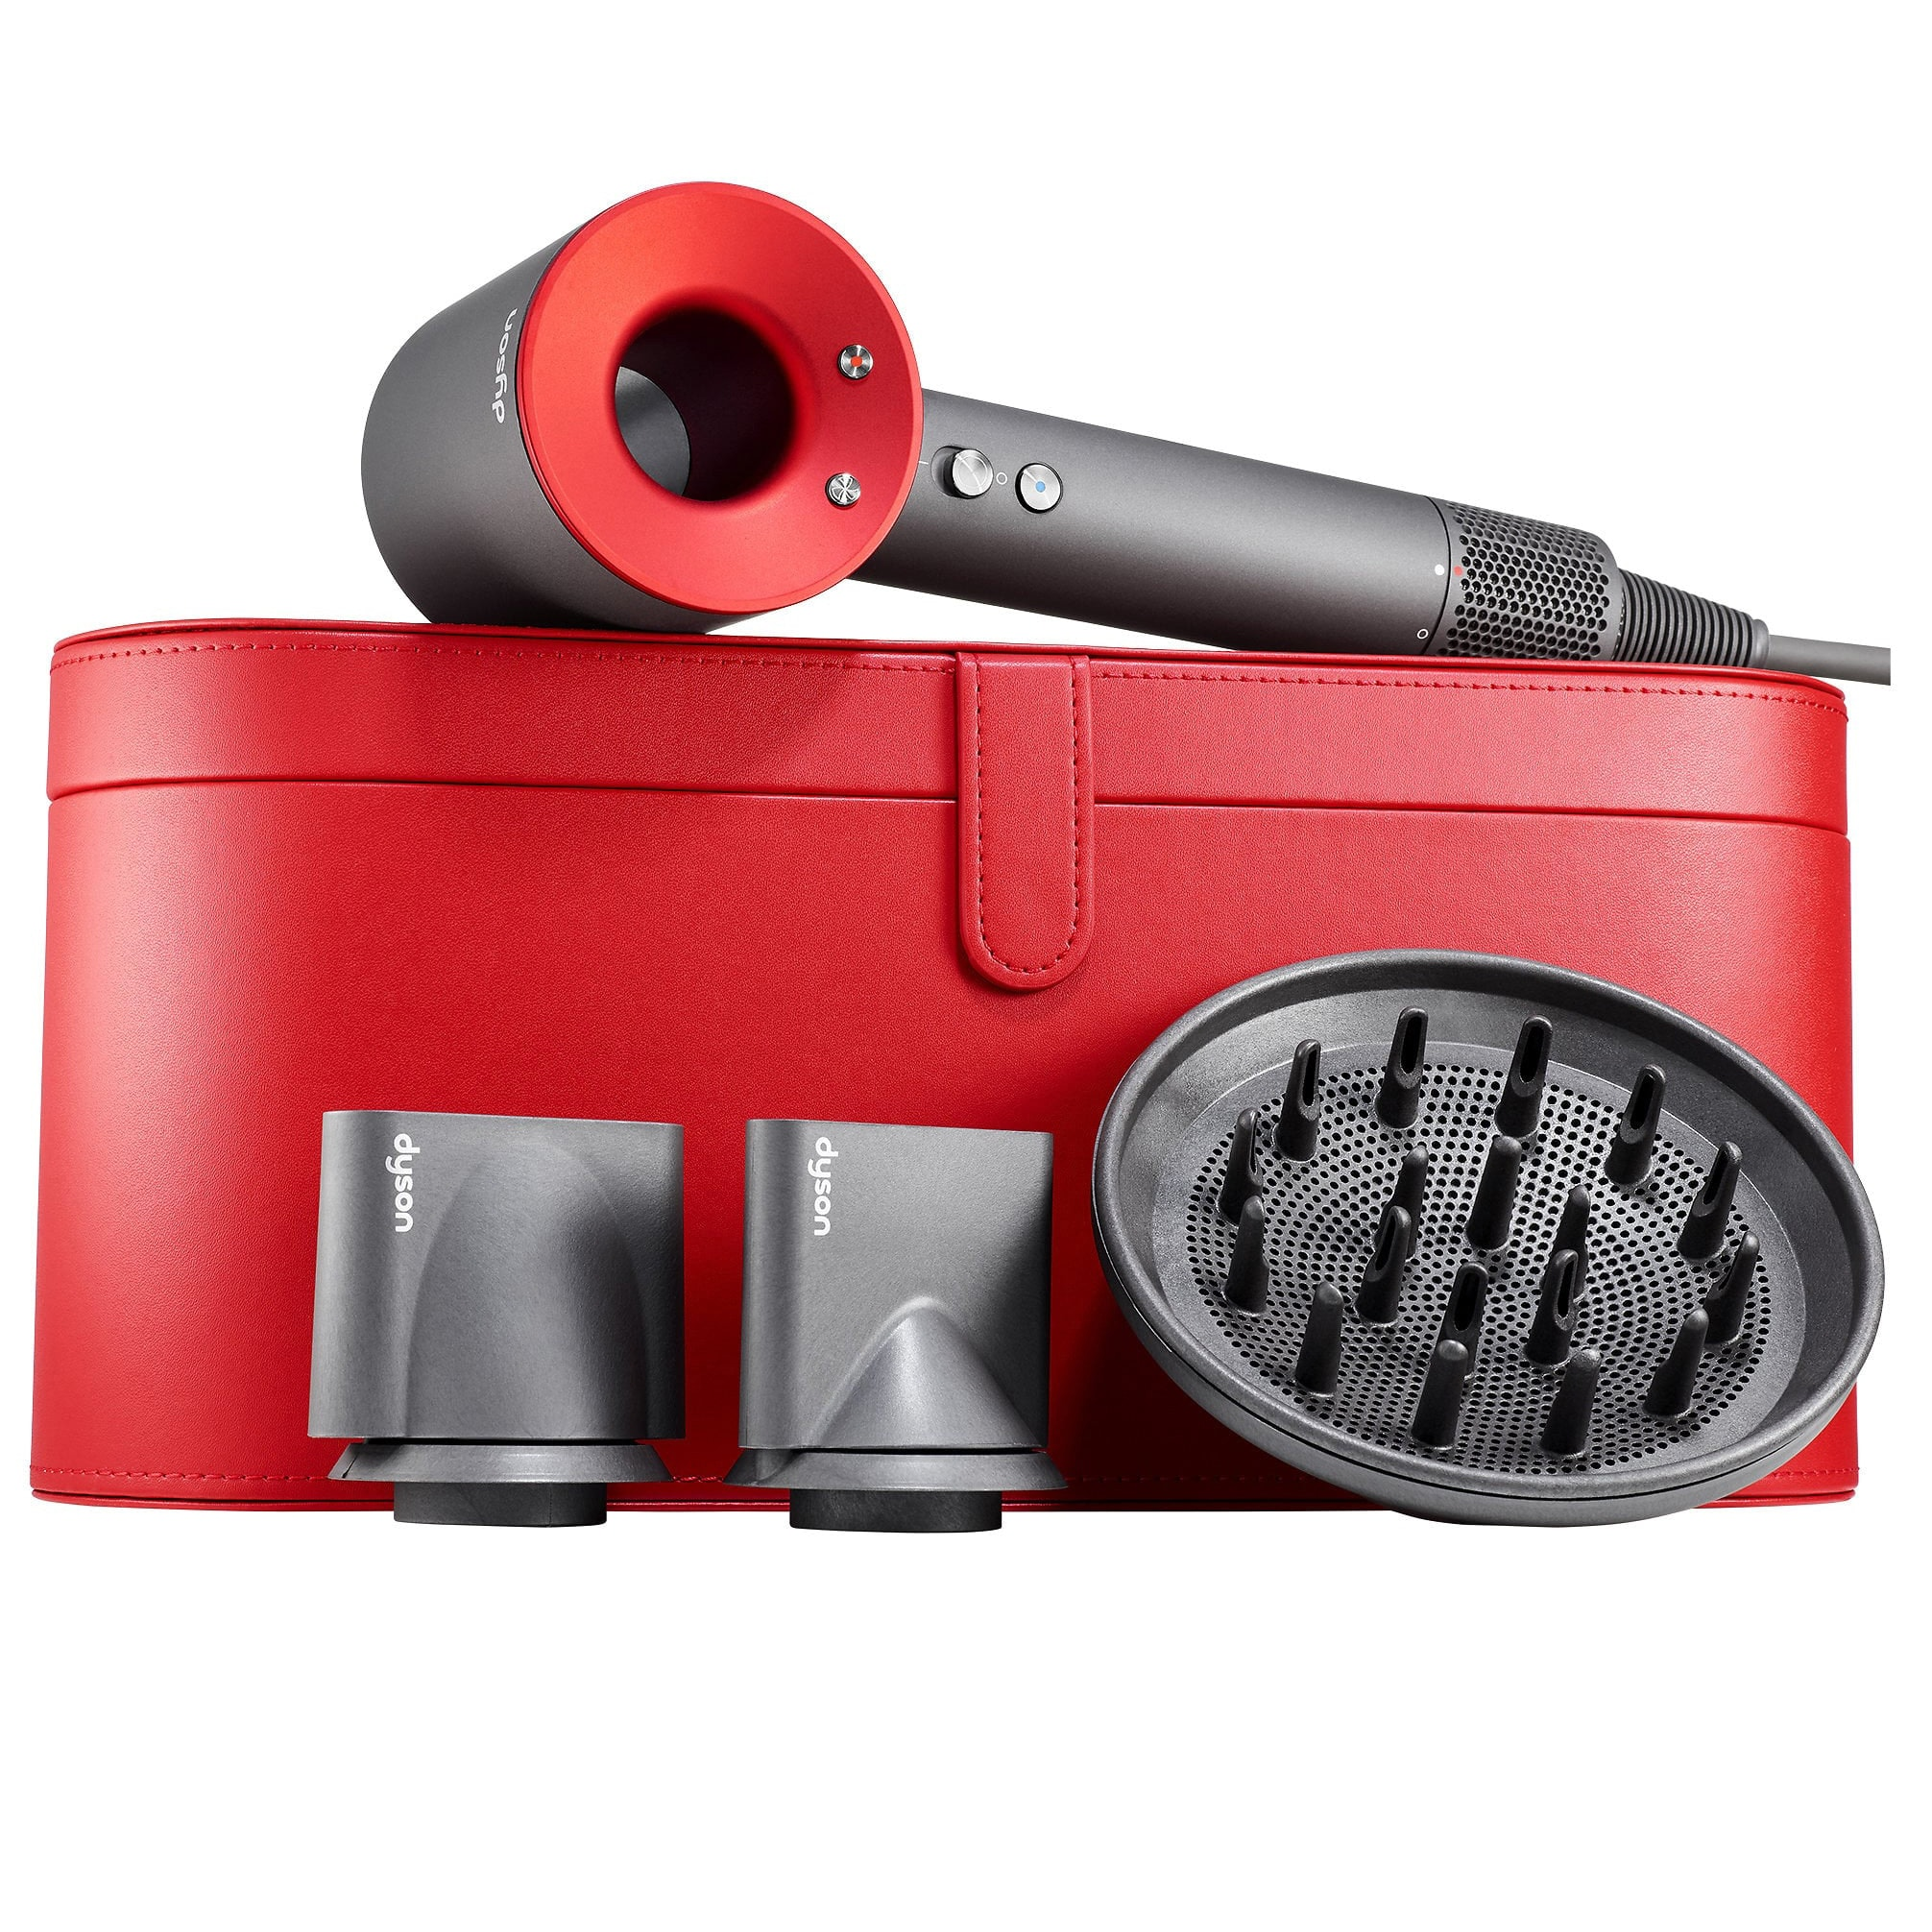 Dyson Supersonic Dryer Gift Edition with Red Case